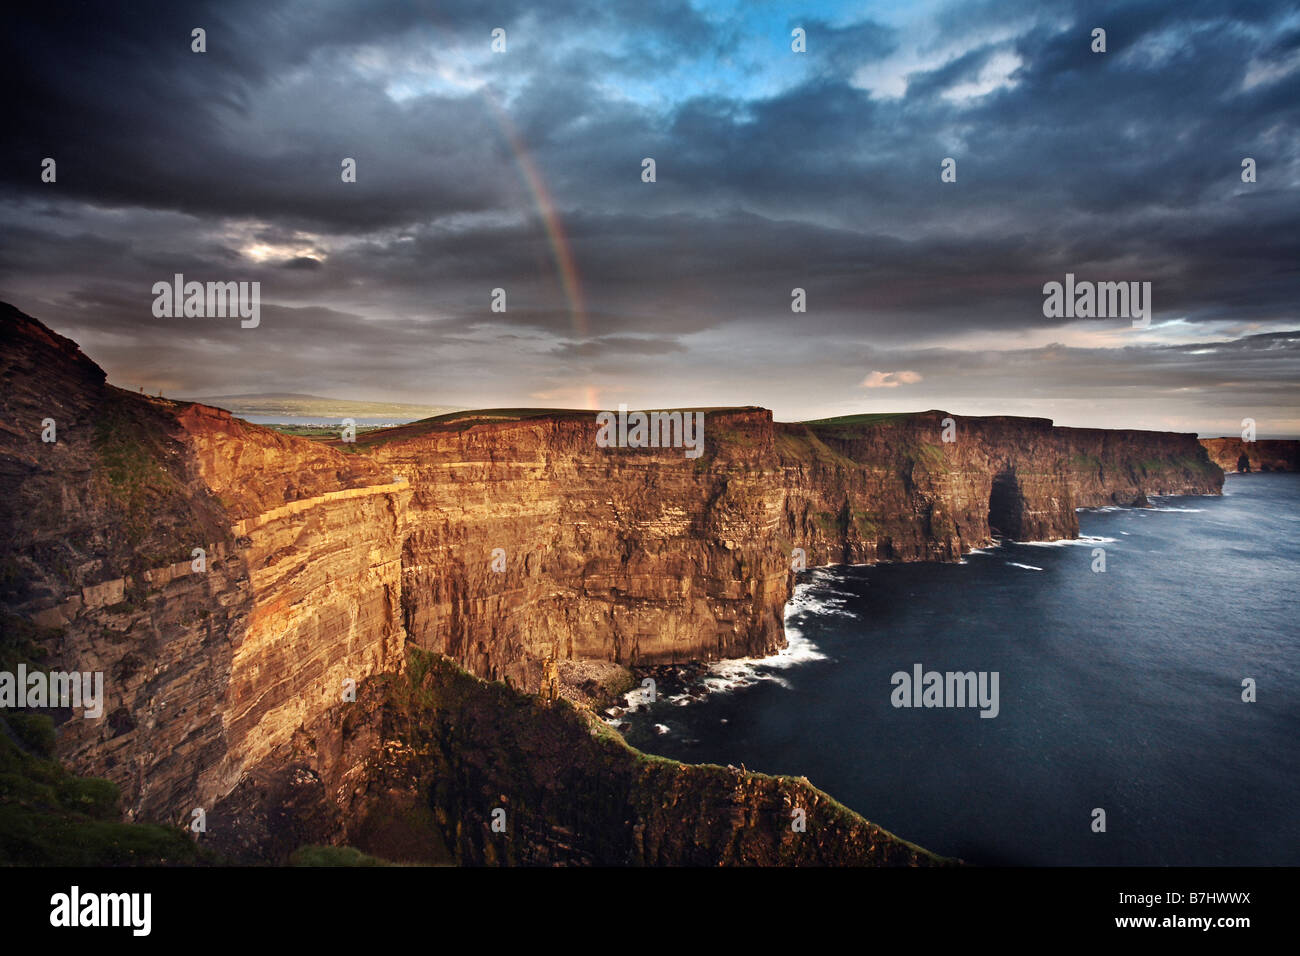 Cliffs of Moher, County Clare, Republic of Ireland. - Stock Image